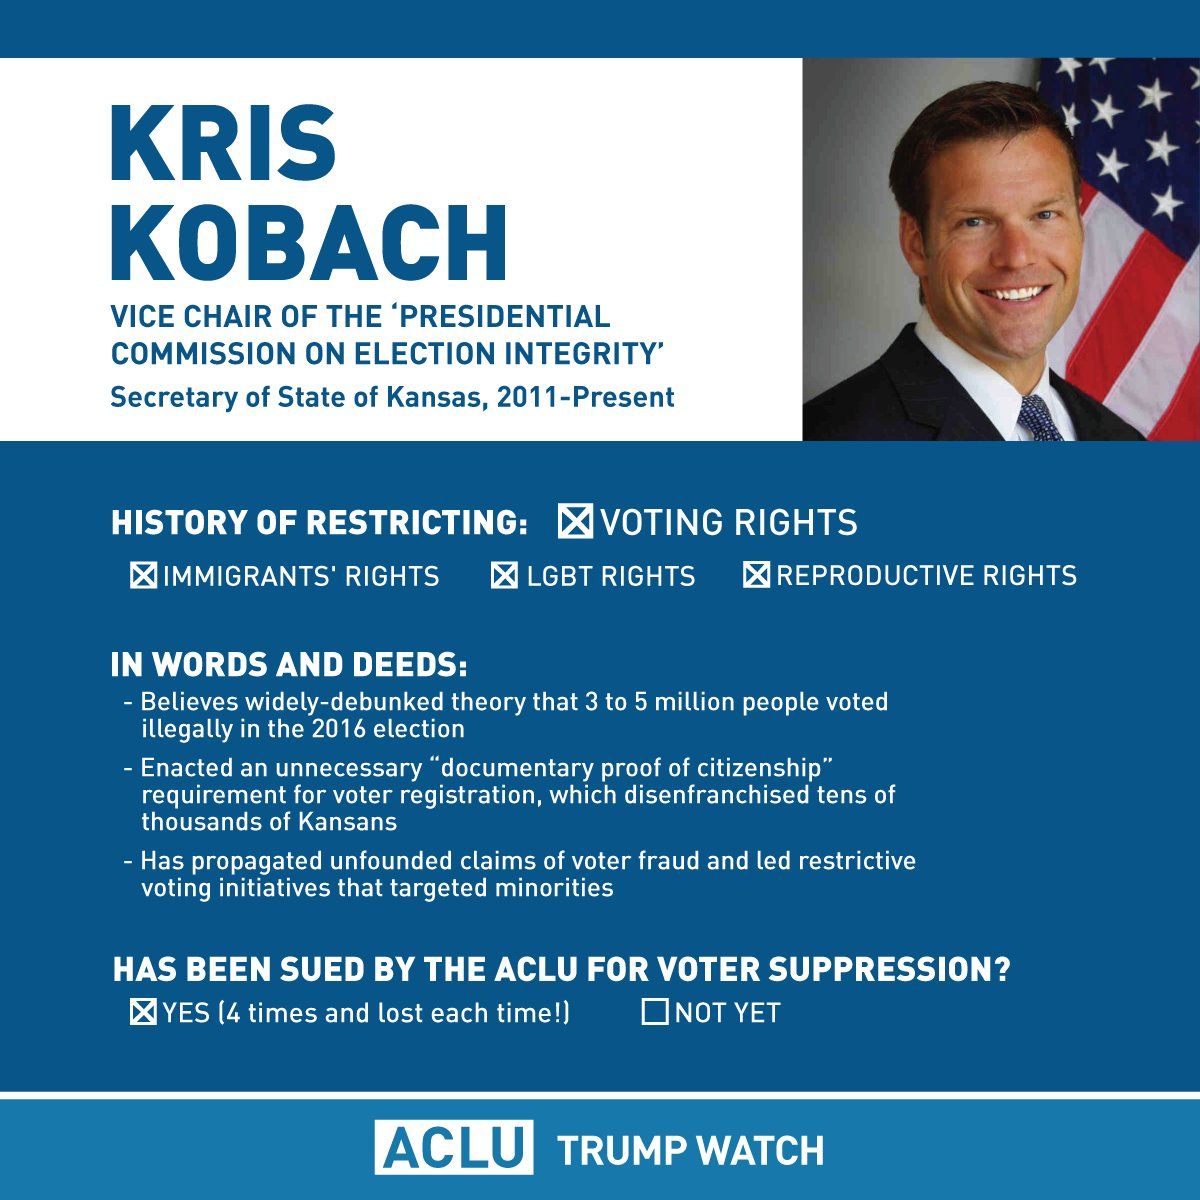 Kris Kobach, vice chair of 'Election Integrity' commission, has been sued by the ACLU for voter suppression 4 times.  Our record is 4-0.